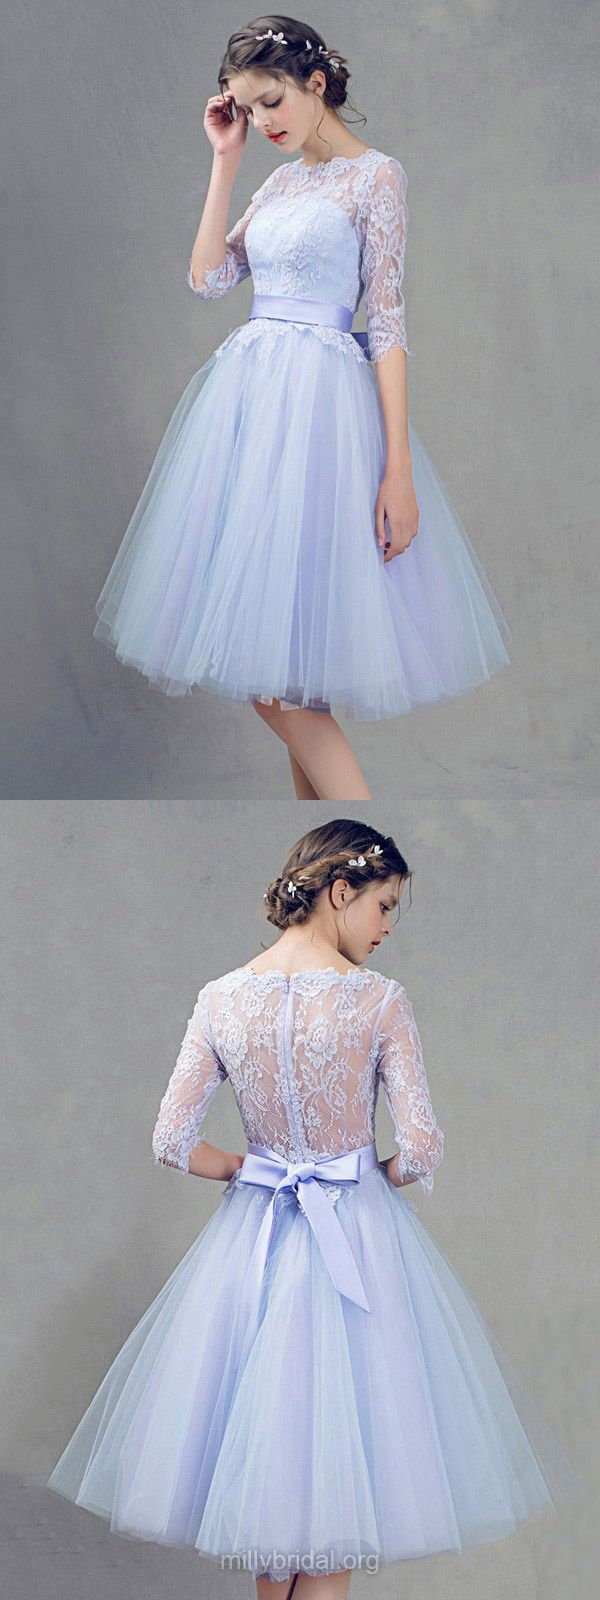 Blue Bridesmaid Dresses Short, Princess Bridesmaid Dresses 2018, Cheap Bridesmaid Dresses Lace, Scoop Neck Bridesmaid Dresses Tulle Knee-length with Sashes / Ribbons